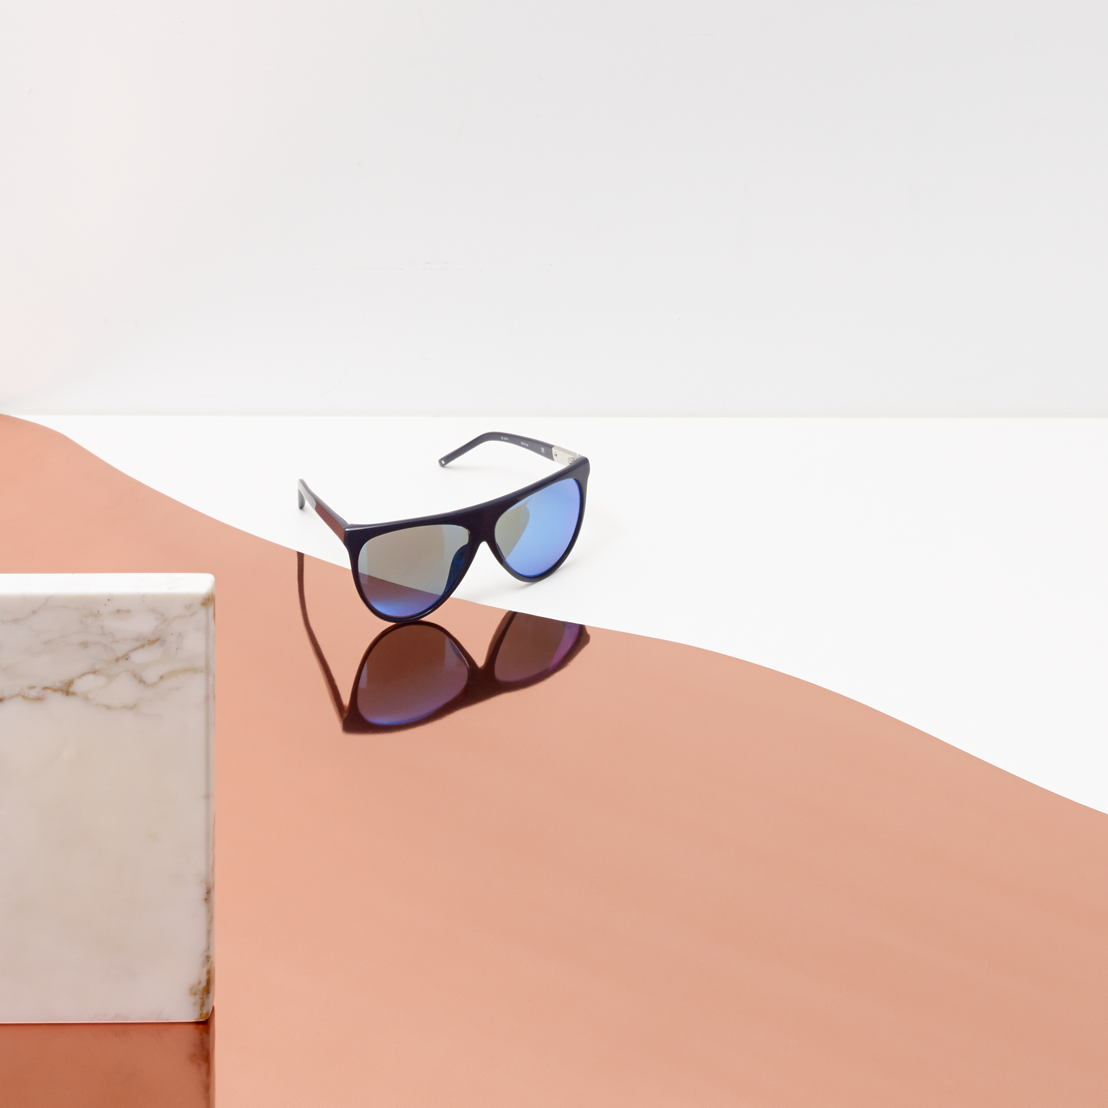 3.1 Phillip Lim - Navy acetate frame teamed with a blue stripe mirror lens